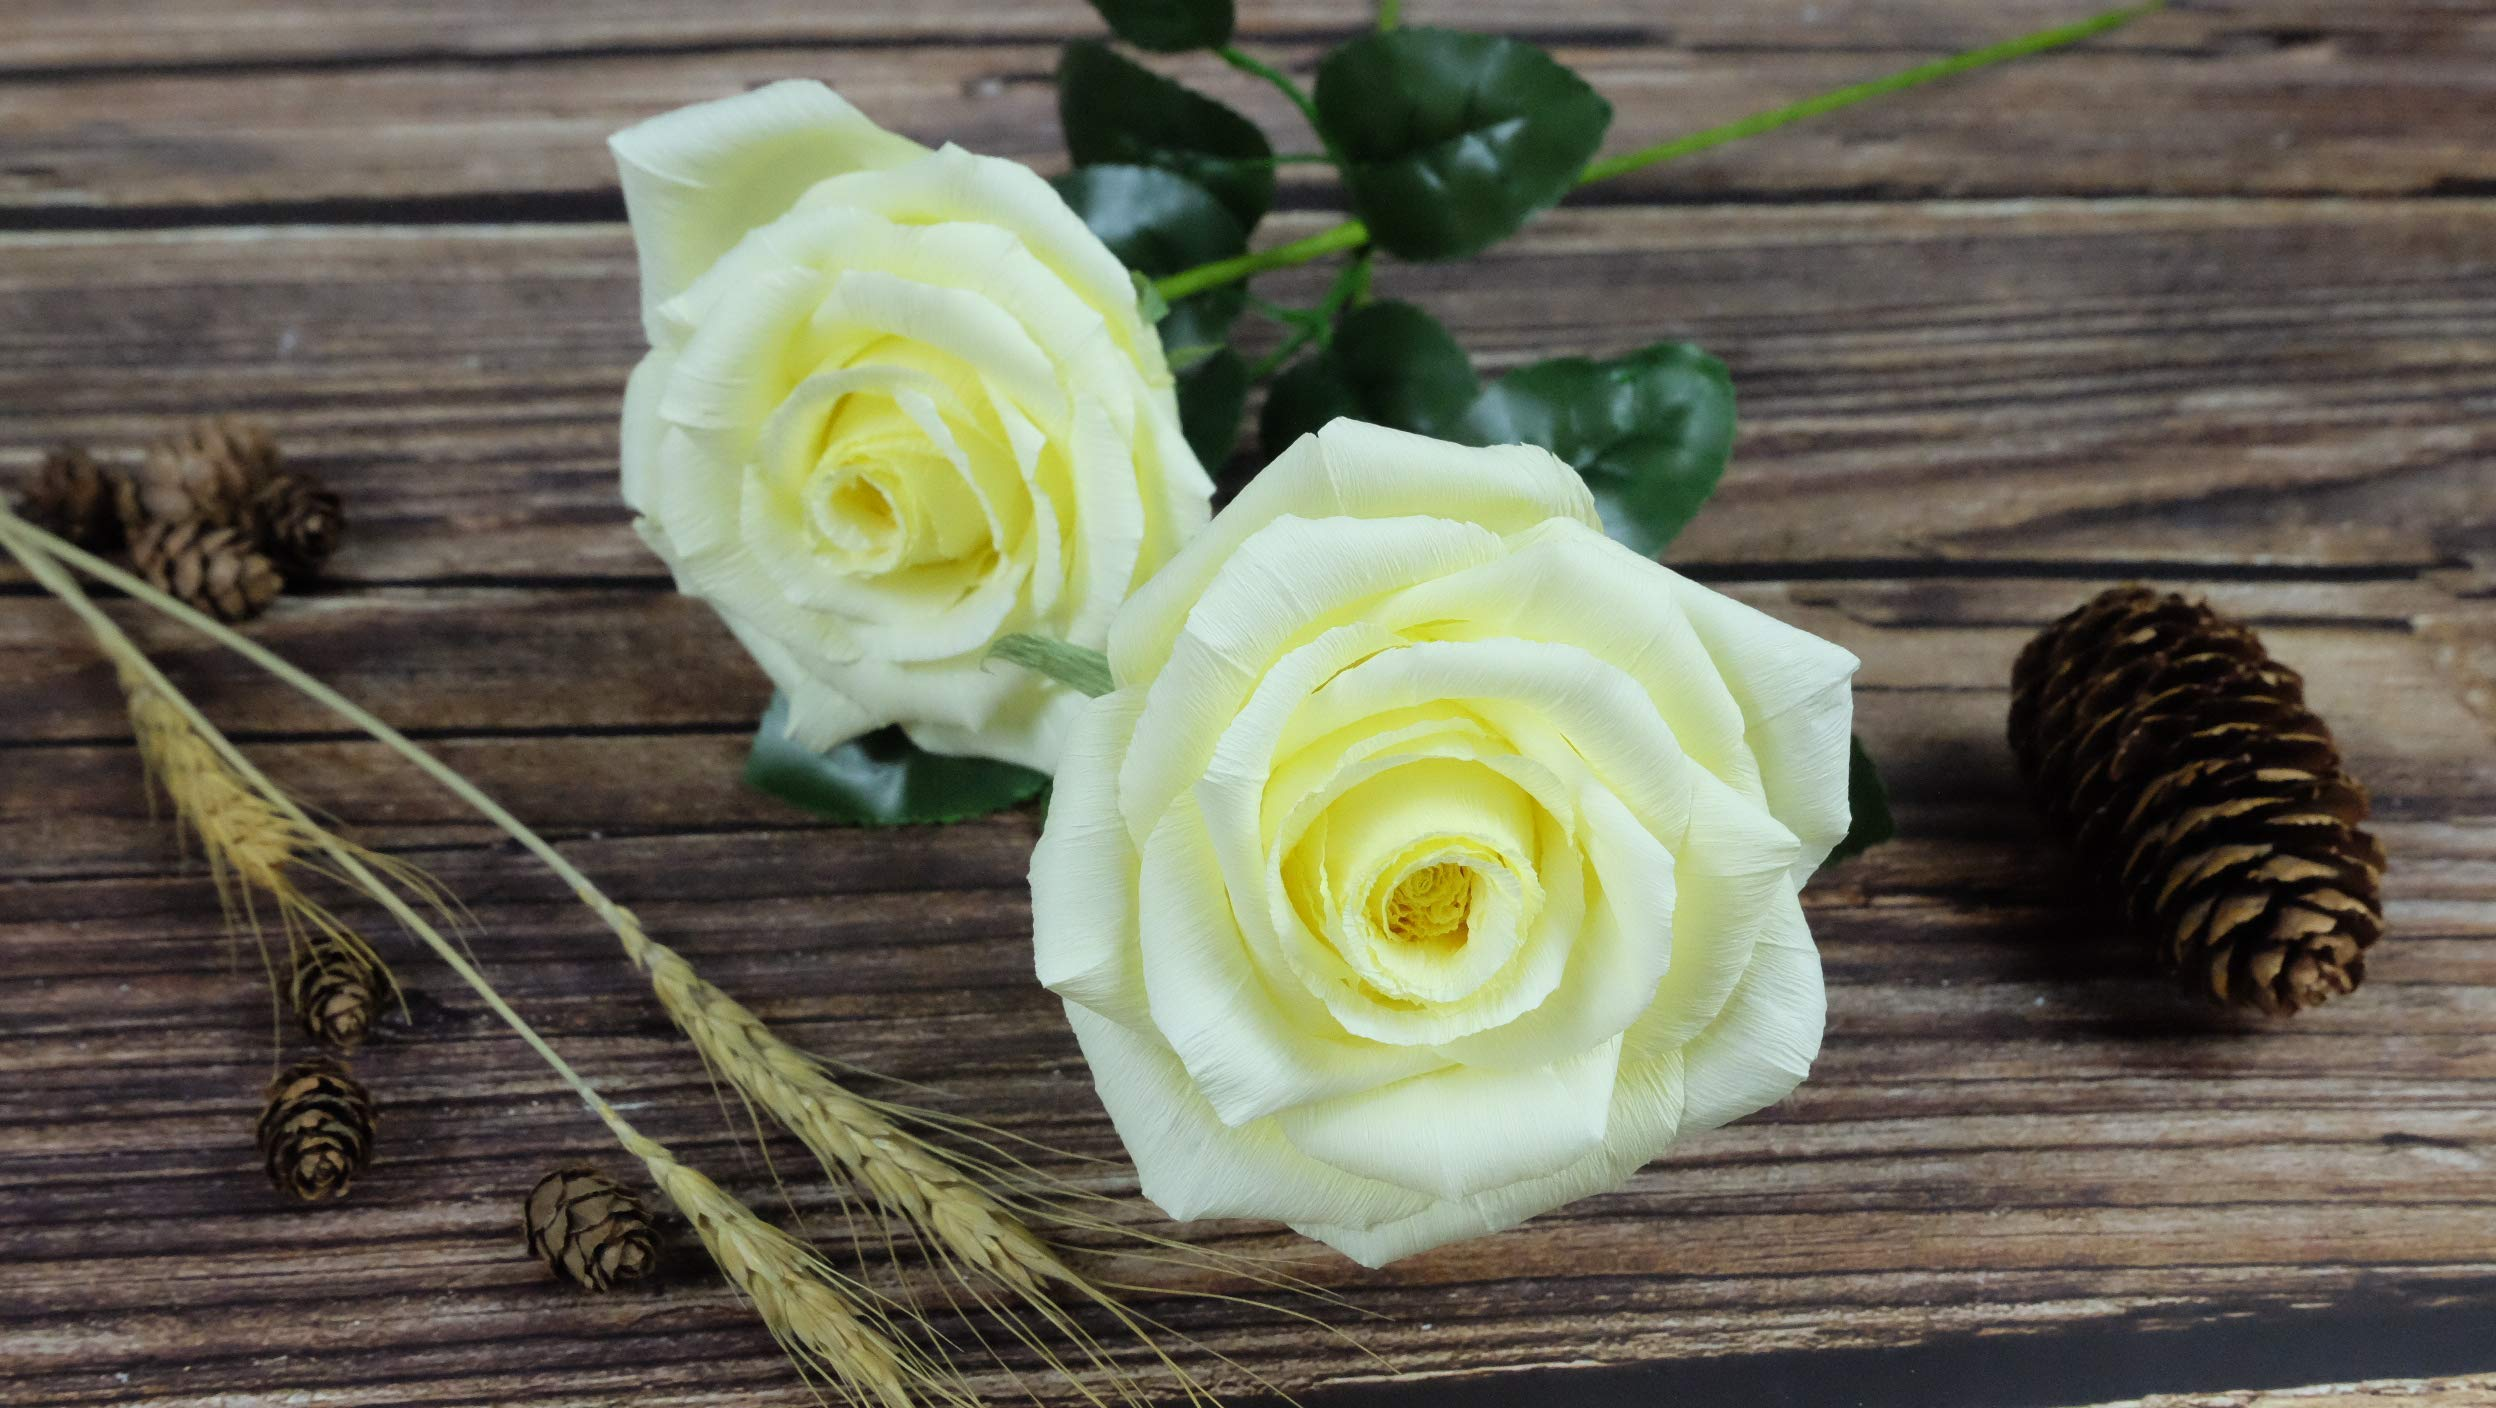 Yellow-Paper-Rose-Handmade-Realistic-Artificial-Flowers-Unique-Gifts-For-Her-for-Wedding-Anniversary-Valentine-Day-Mothers-Day-Ideal-for-Home-Wedding-Party-Decoration-01-Single-Long-Stem